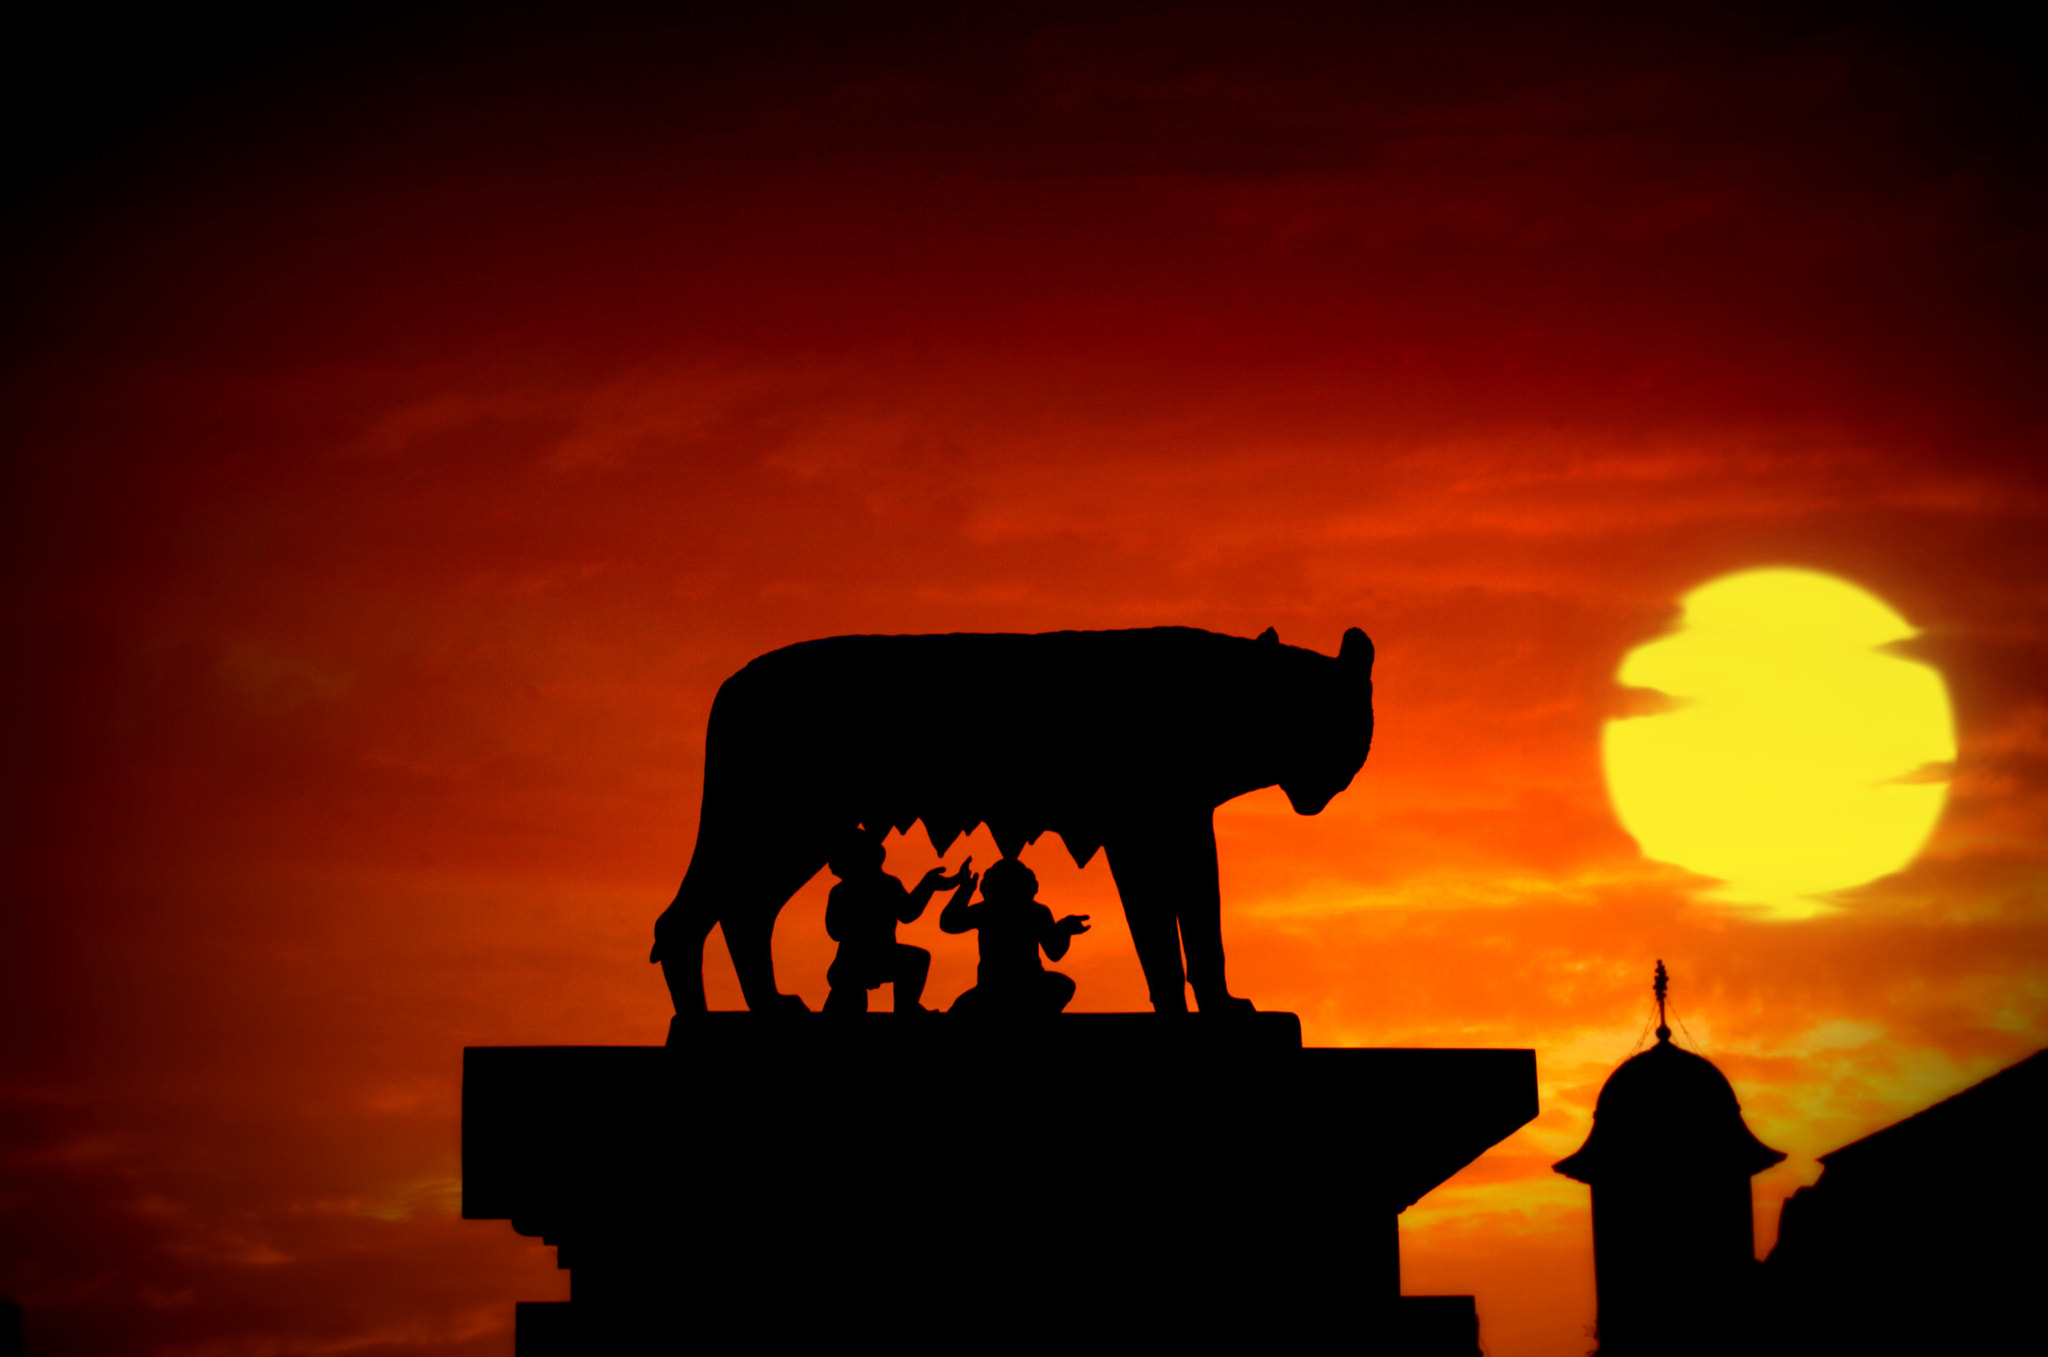 Photograph Romulus and Remus by Schipor Catalin on 500px